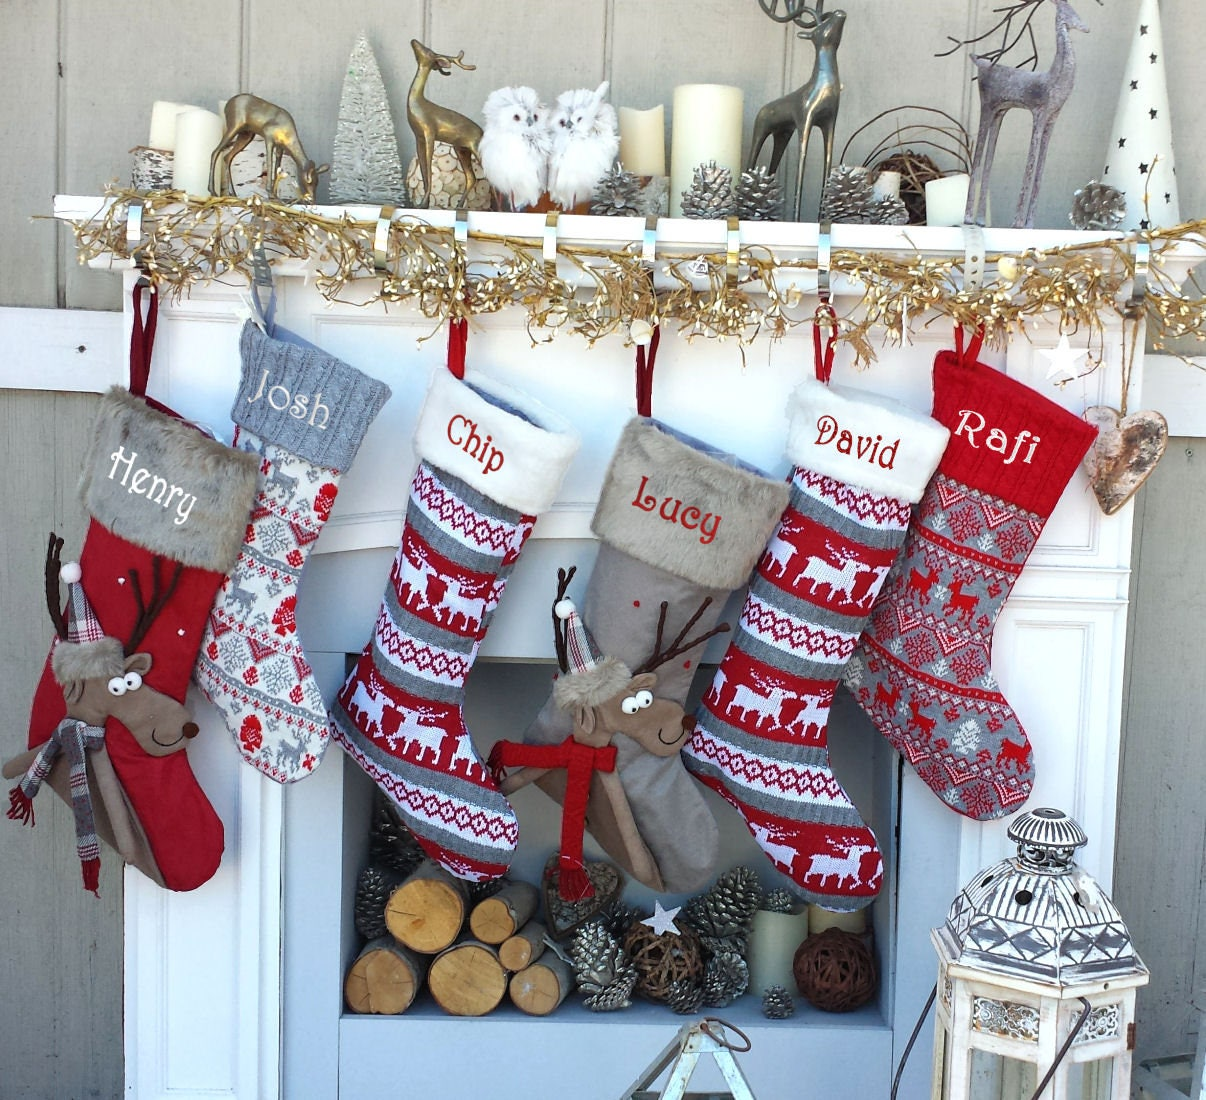 Reindeer Fun Reindeer Knit Christmas Stockings Red White Gray Scandinavian Nordic Knitted Holiday Theme Kids Adults Personalized Christmas